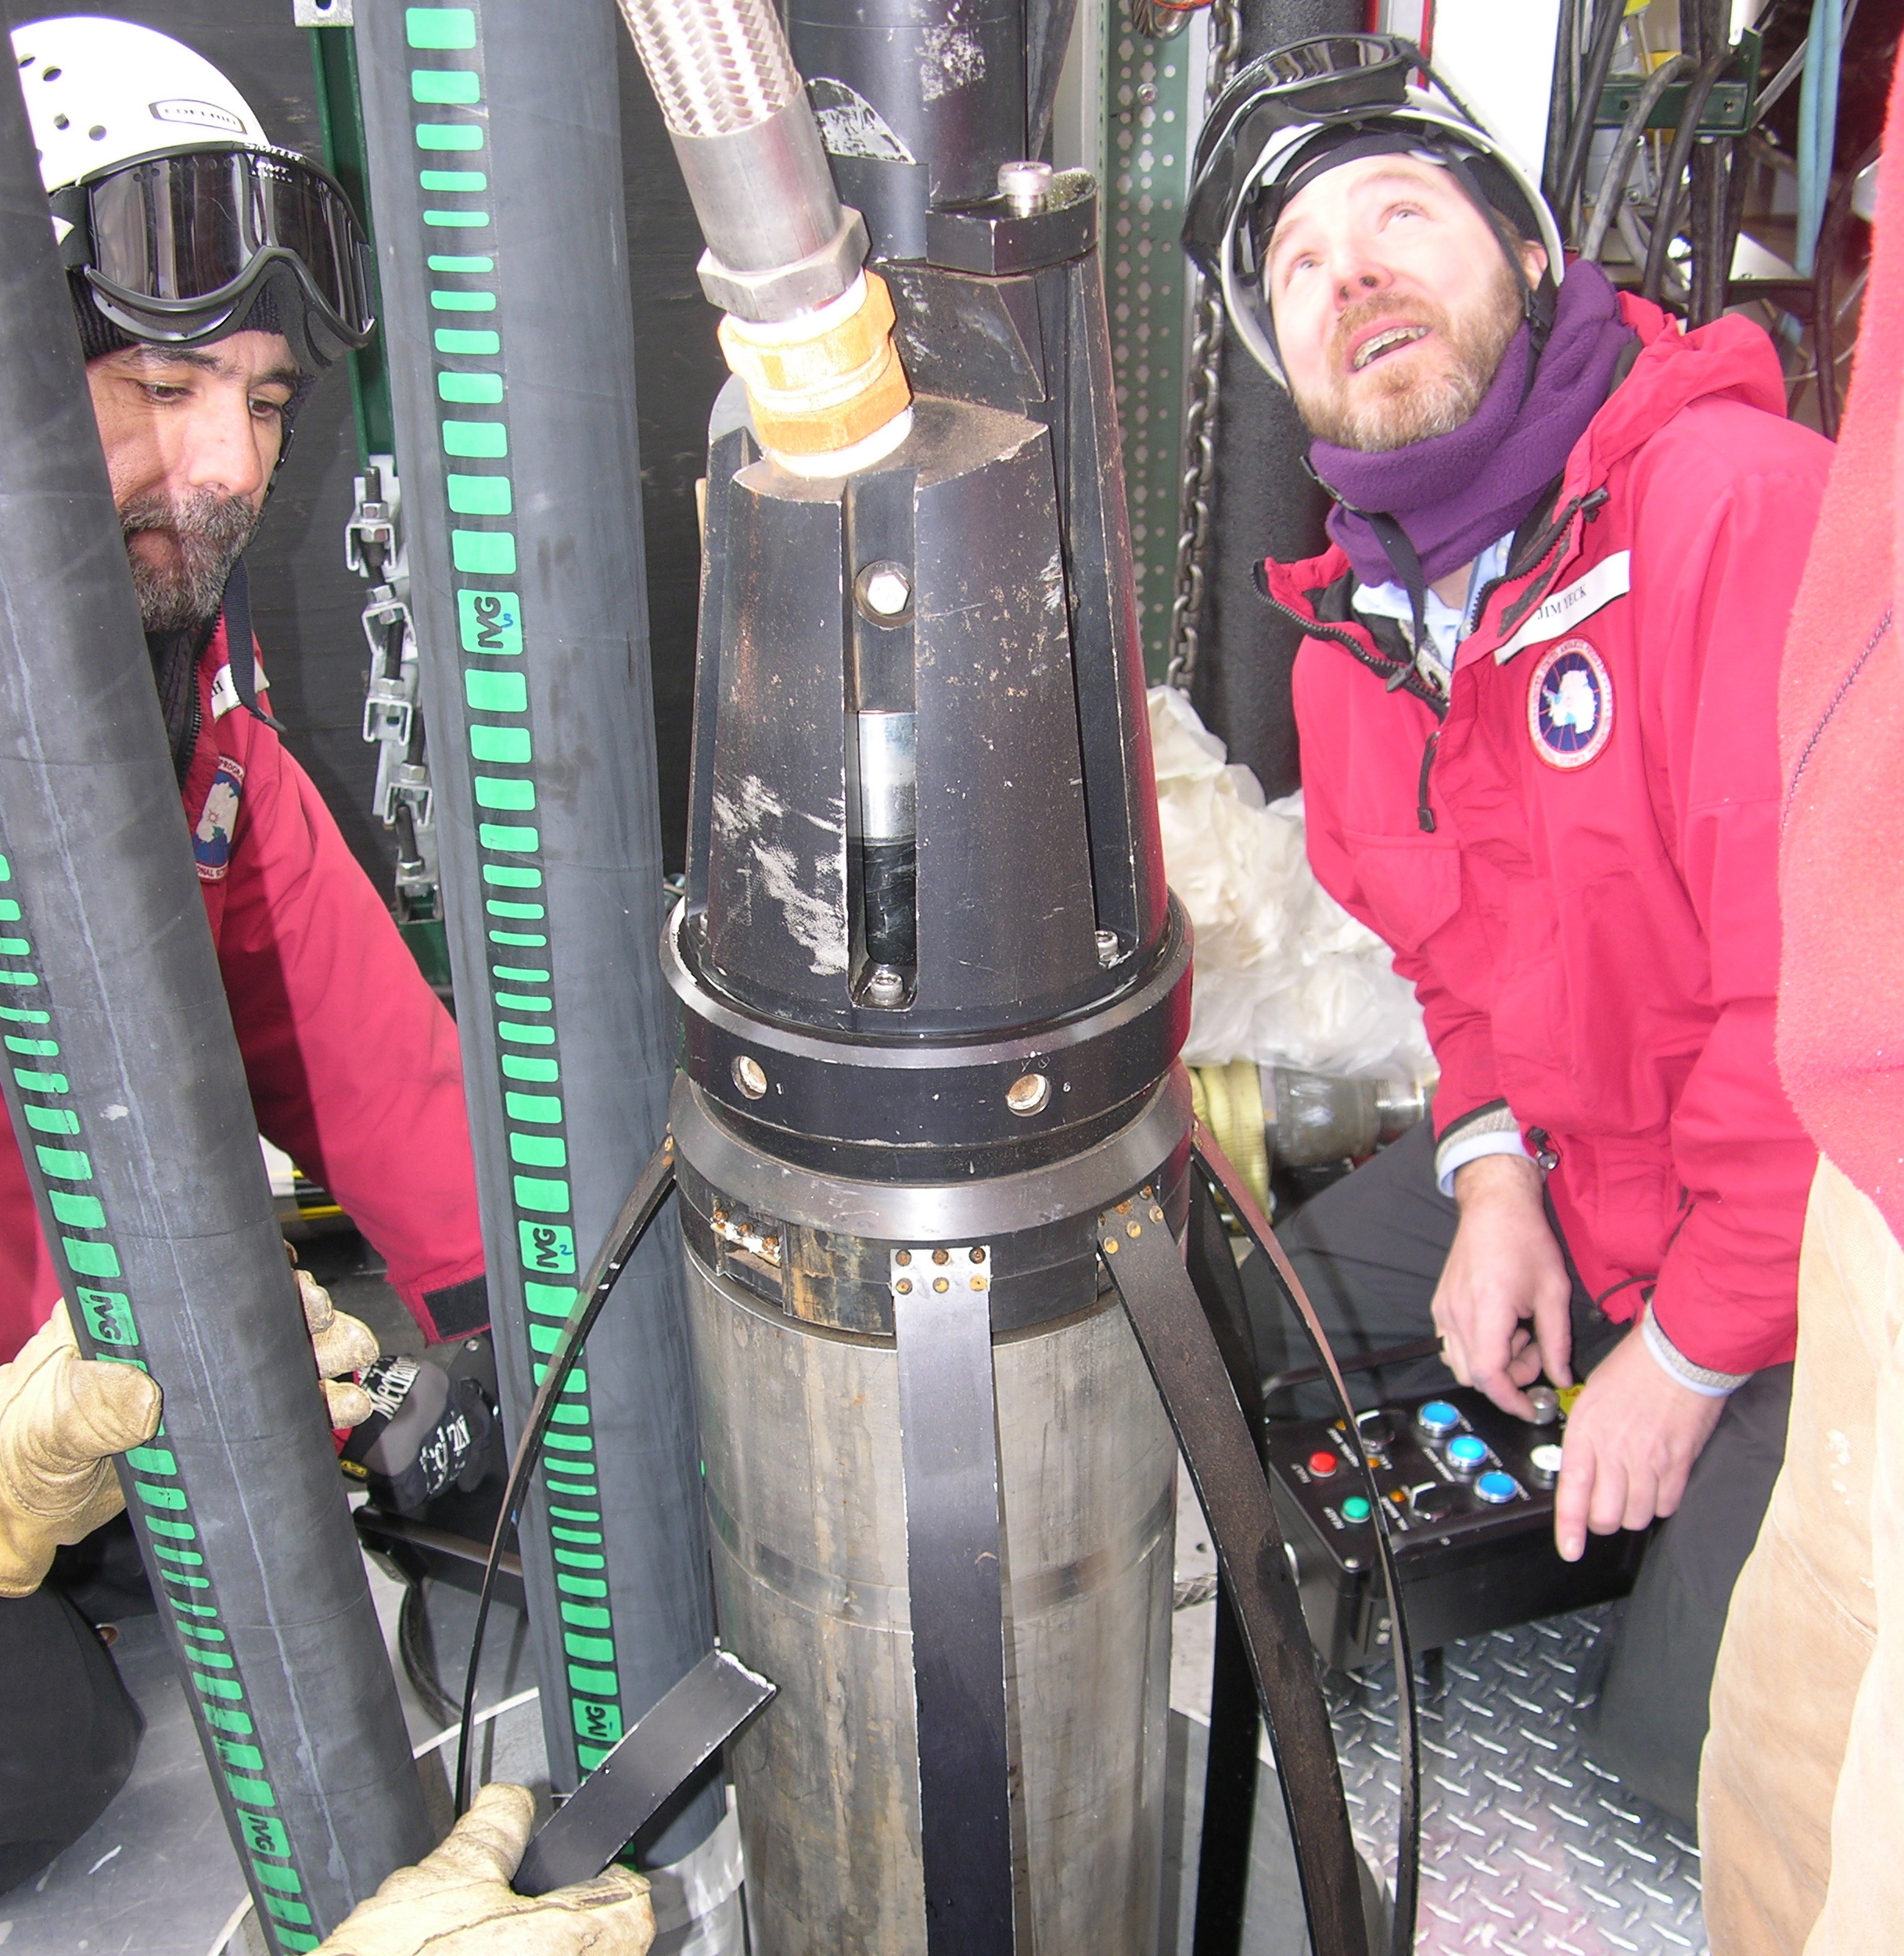 Operating the IceCube enhanced hot water drill